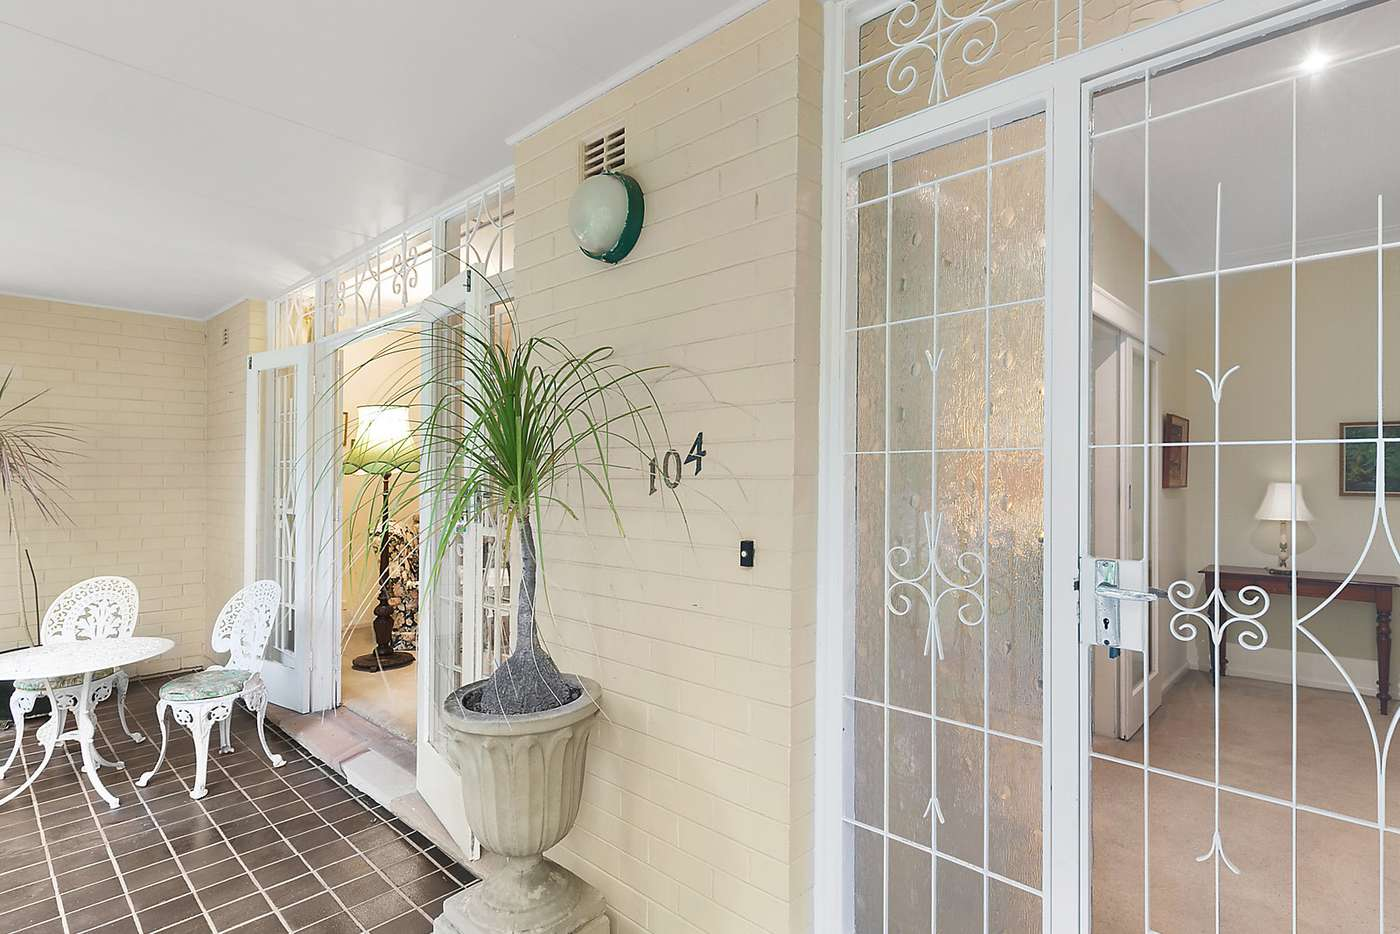 Seventh view of Homely house listing, 104 Yarrabung Road, St Ives NSW 2075